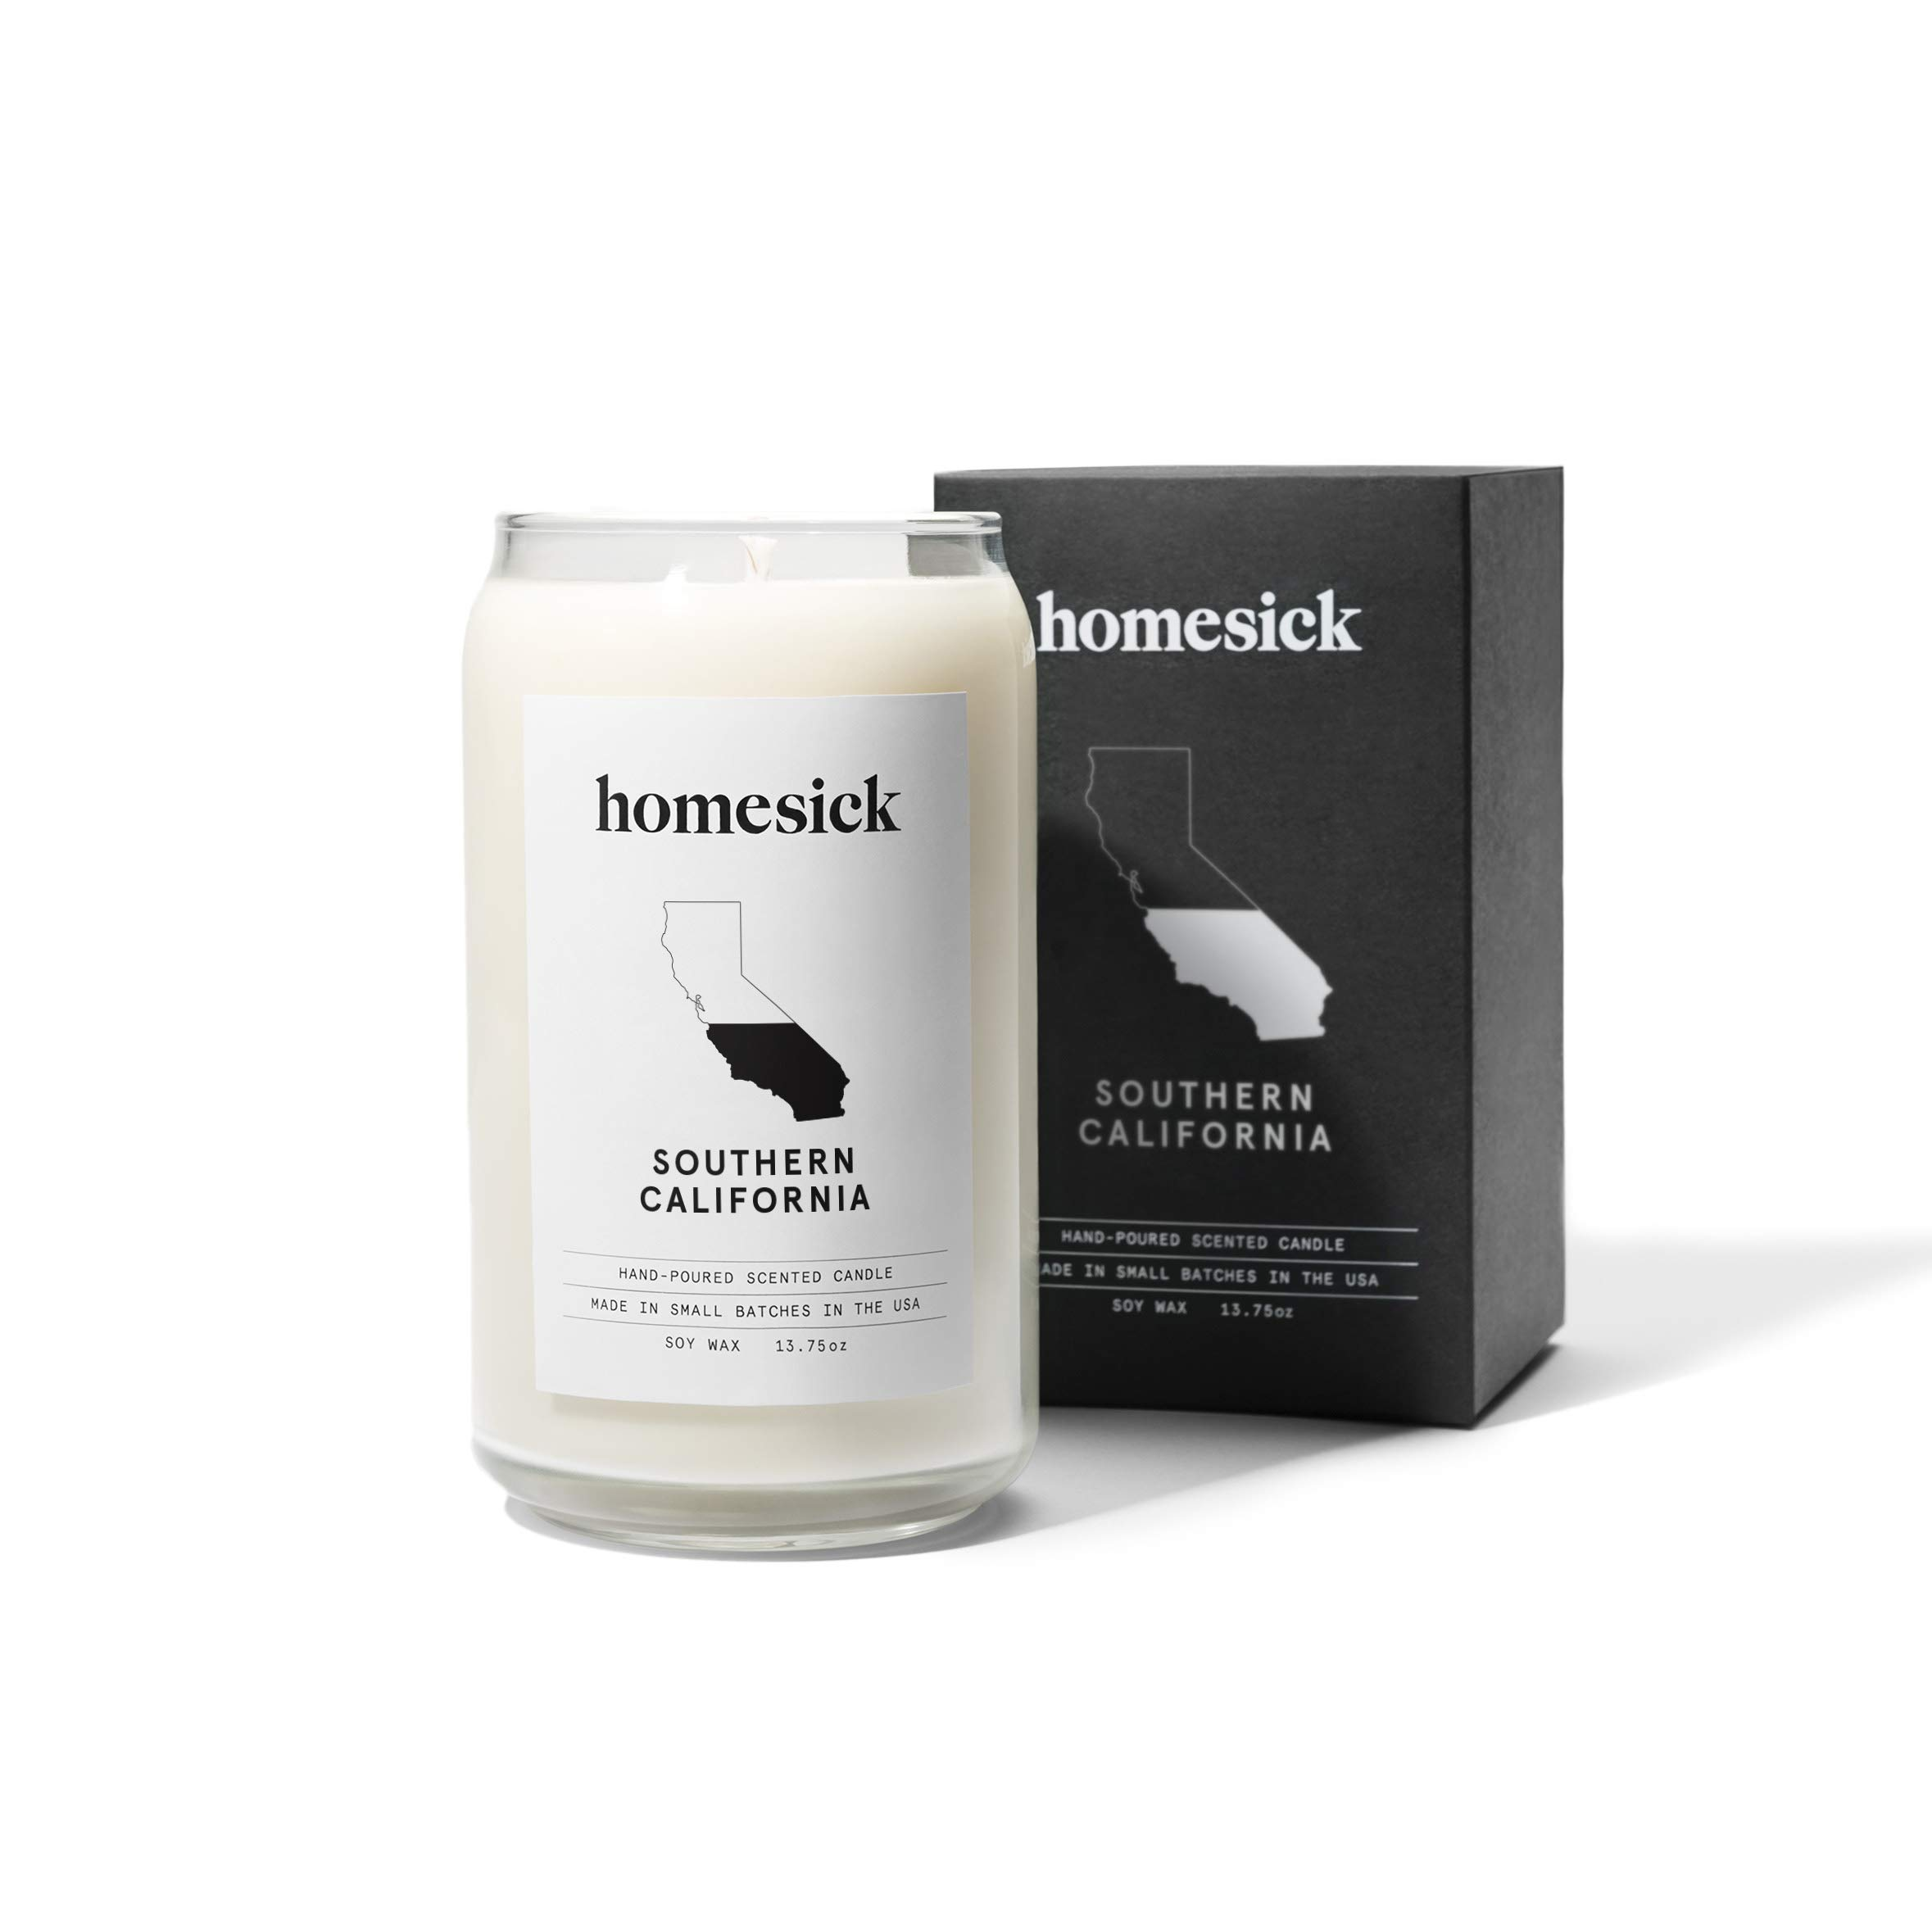 Homesick Scented Candle, Southern California